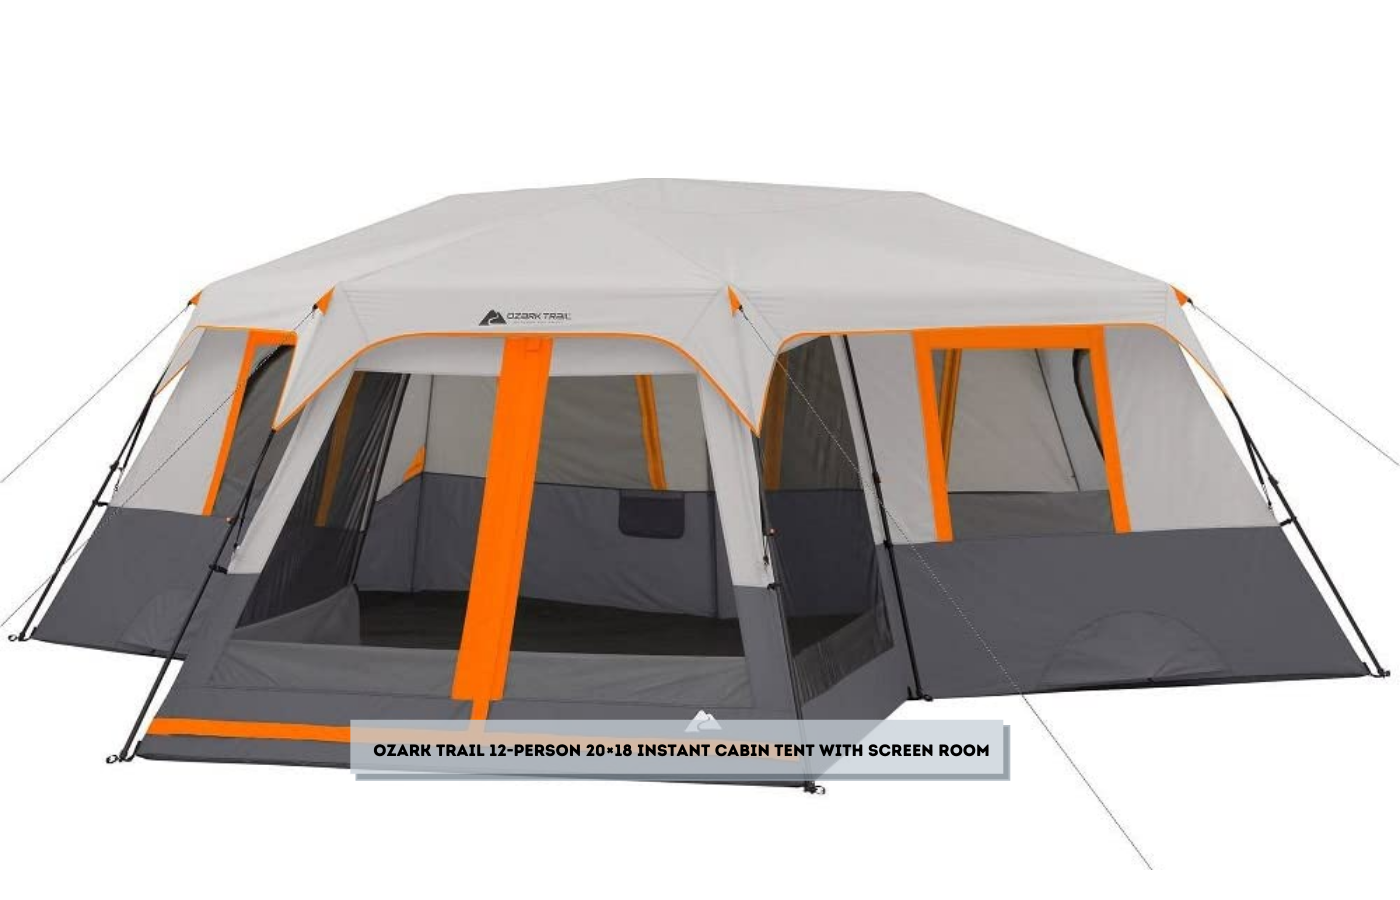 Ozark Trail 12-Person 20×18 Instant Cabin Tent with Screen Room